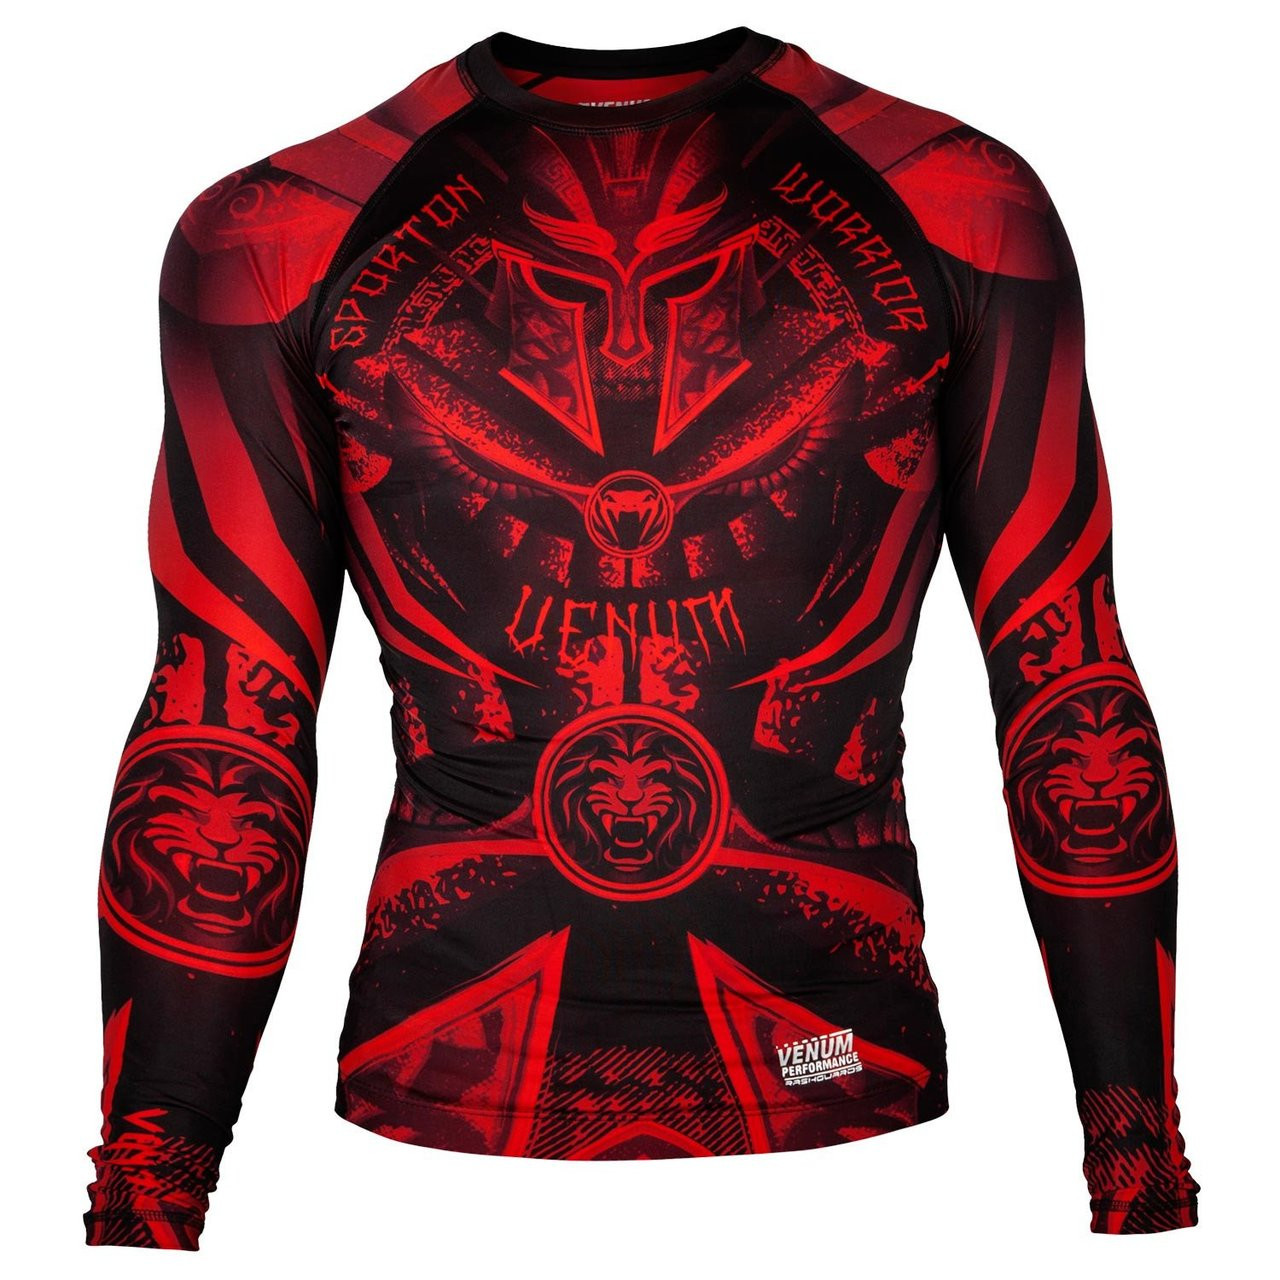 Venum Gladiator 3.0 Longsleeve Rashguard (Black/Red)  Available at www.thejiujitsushop.com  Enjoy Free Shipping from The Jiu Jitsu Shop.